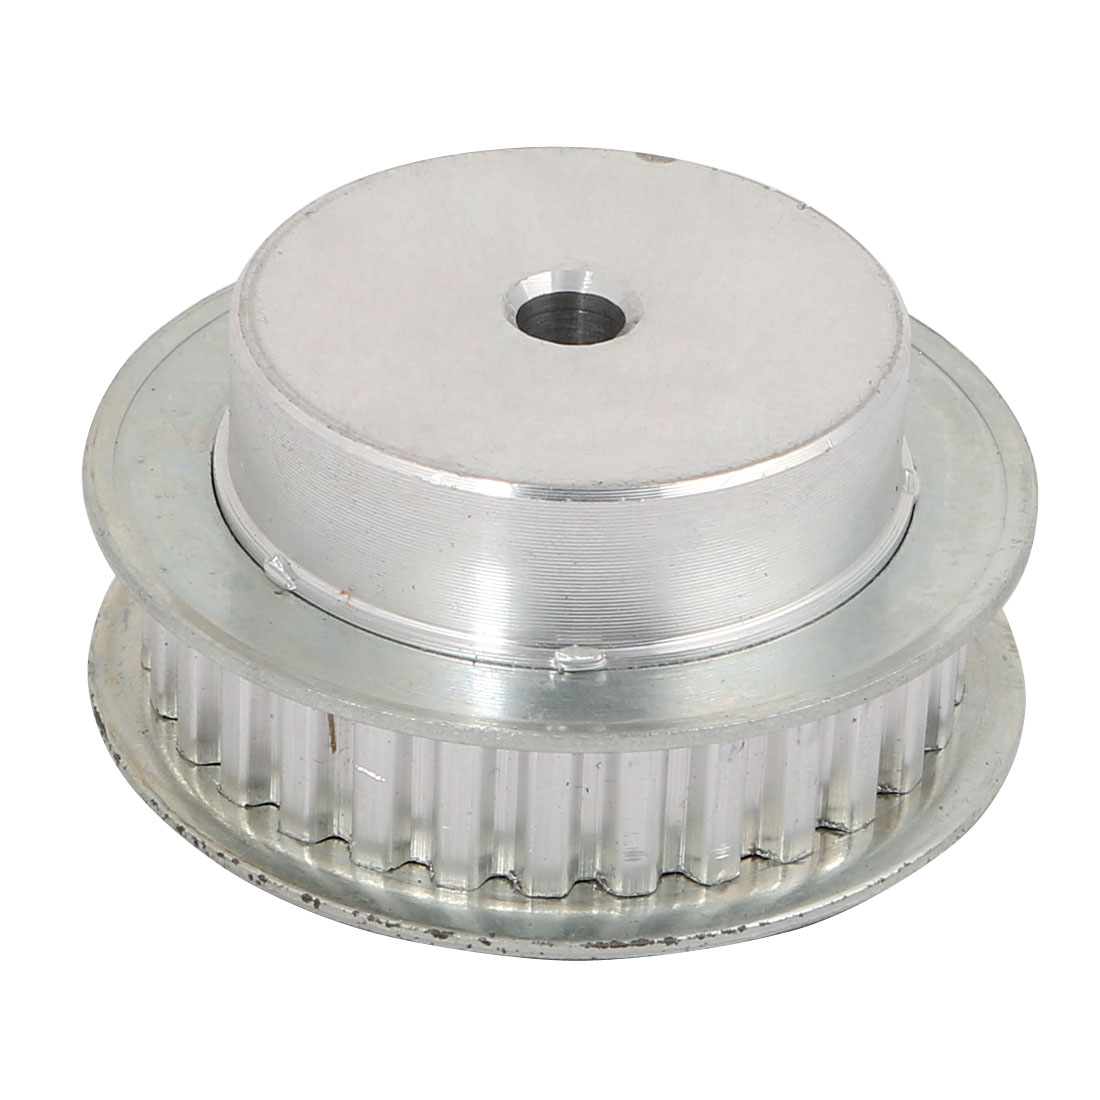 XL XL30 Aluminum Alloy 30 Teeth 6mm Bore Motor Part Belt Timing Pulley